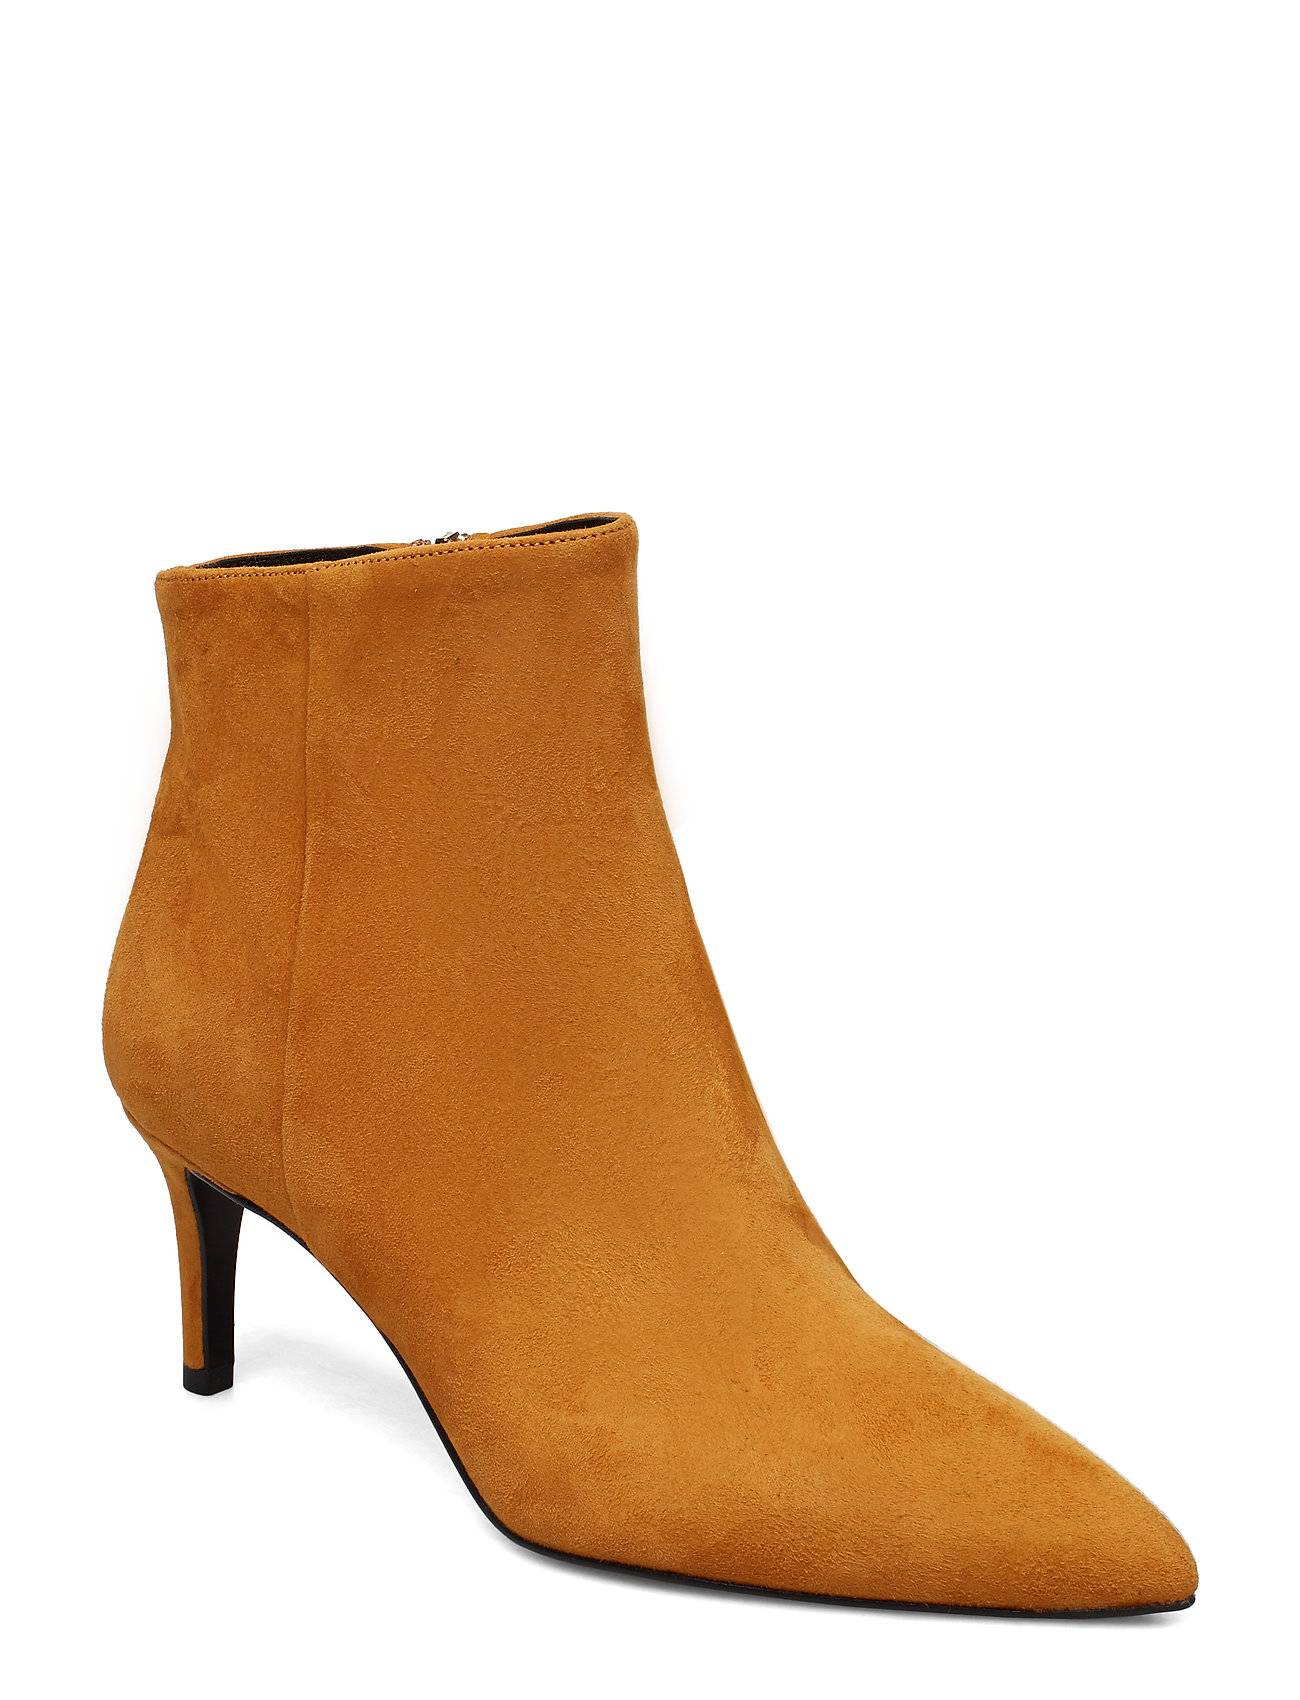 Apair Pointed Bootie Low High Front Shoes Boots Ankle Boots Ankle Boots With Heel Ruskea Apair